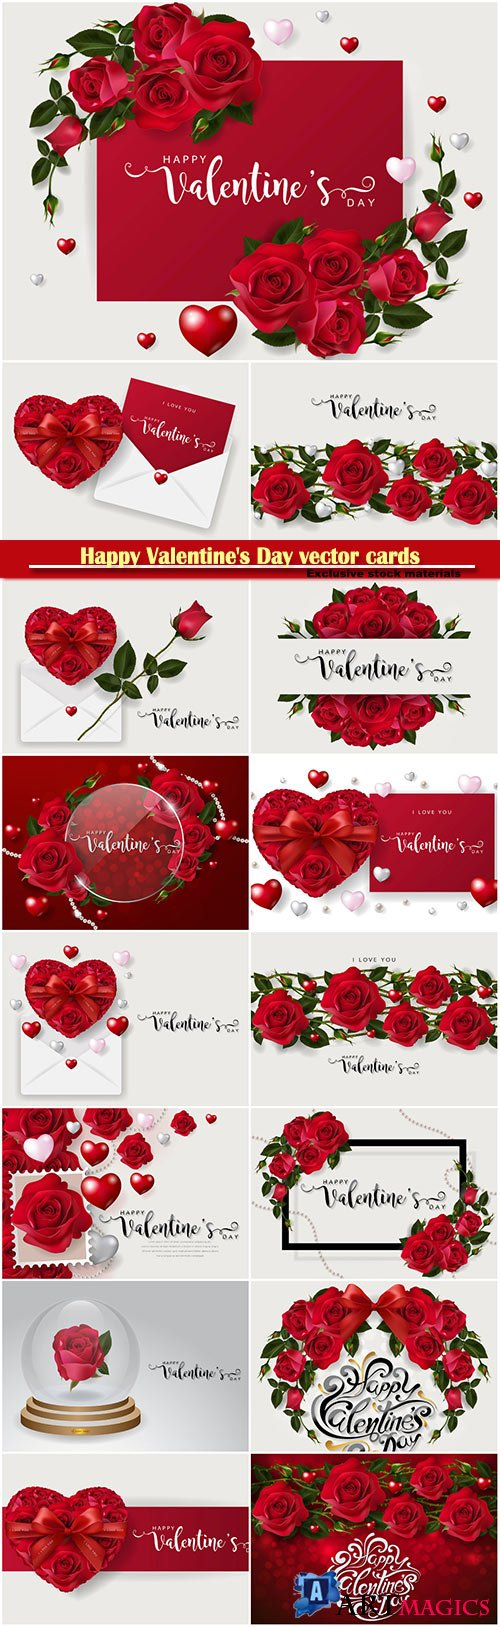 Happy Valentine's Day vector cards, red roses and hearts, romantic backgrounds # 2